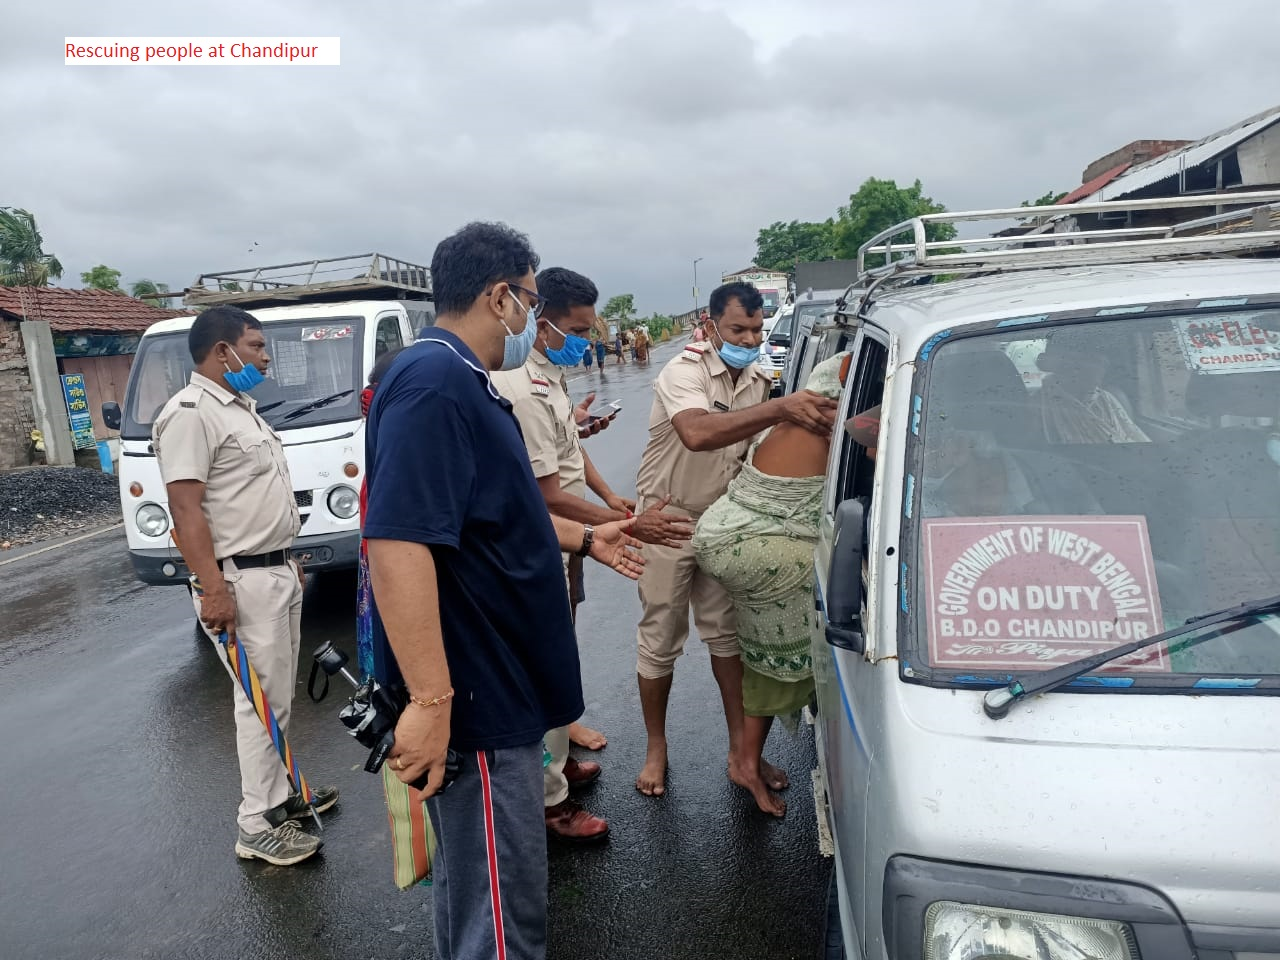 Rescuing people at Chandipur